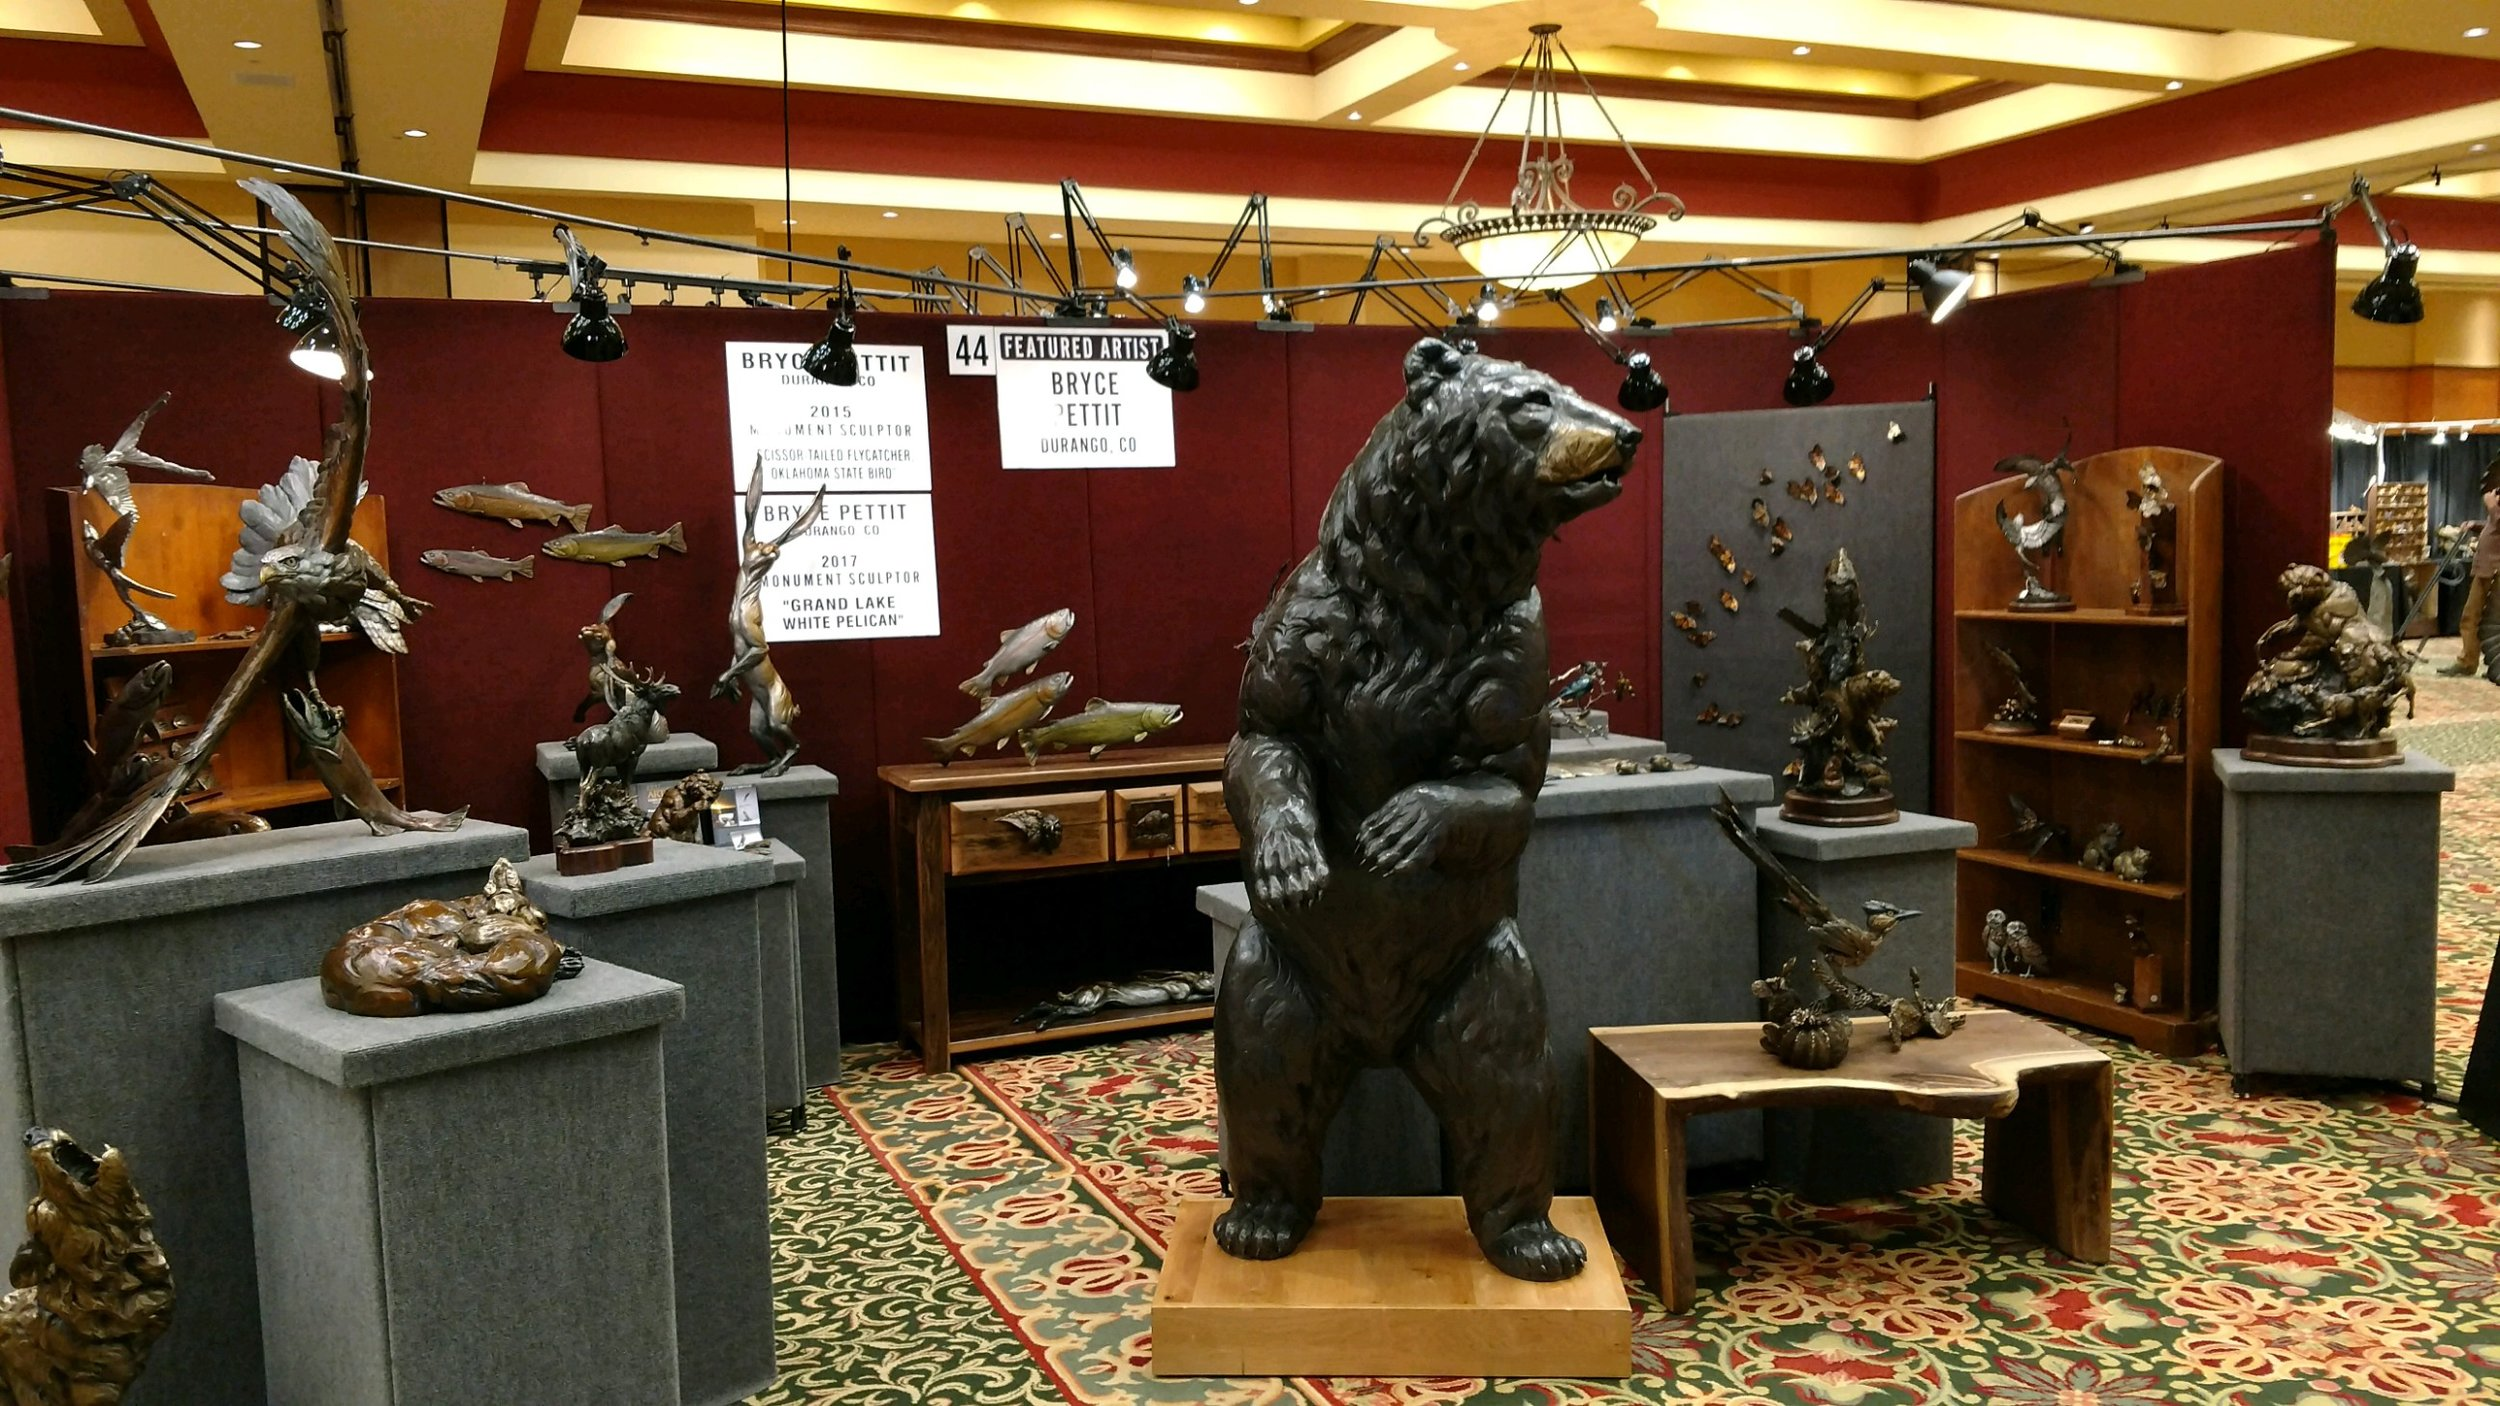 Natureworks Art Show   featured artist and monument winner. February 25th & 26th at the Renaissance Hotel, Tulsa, Oklahoma.